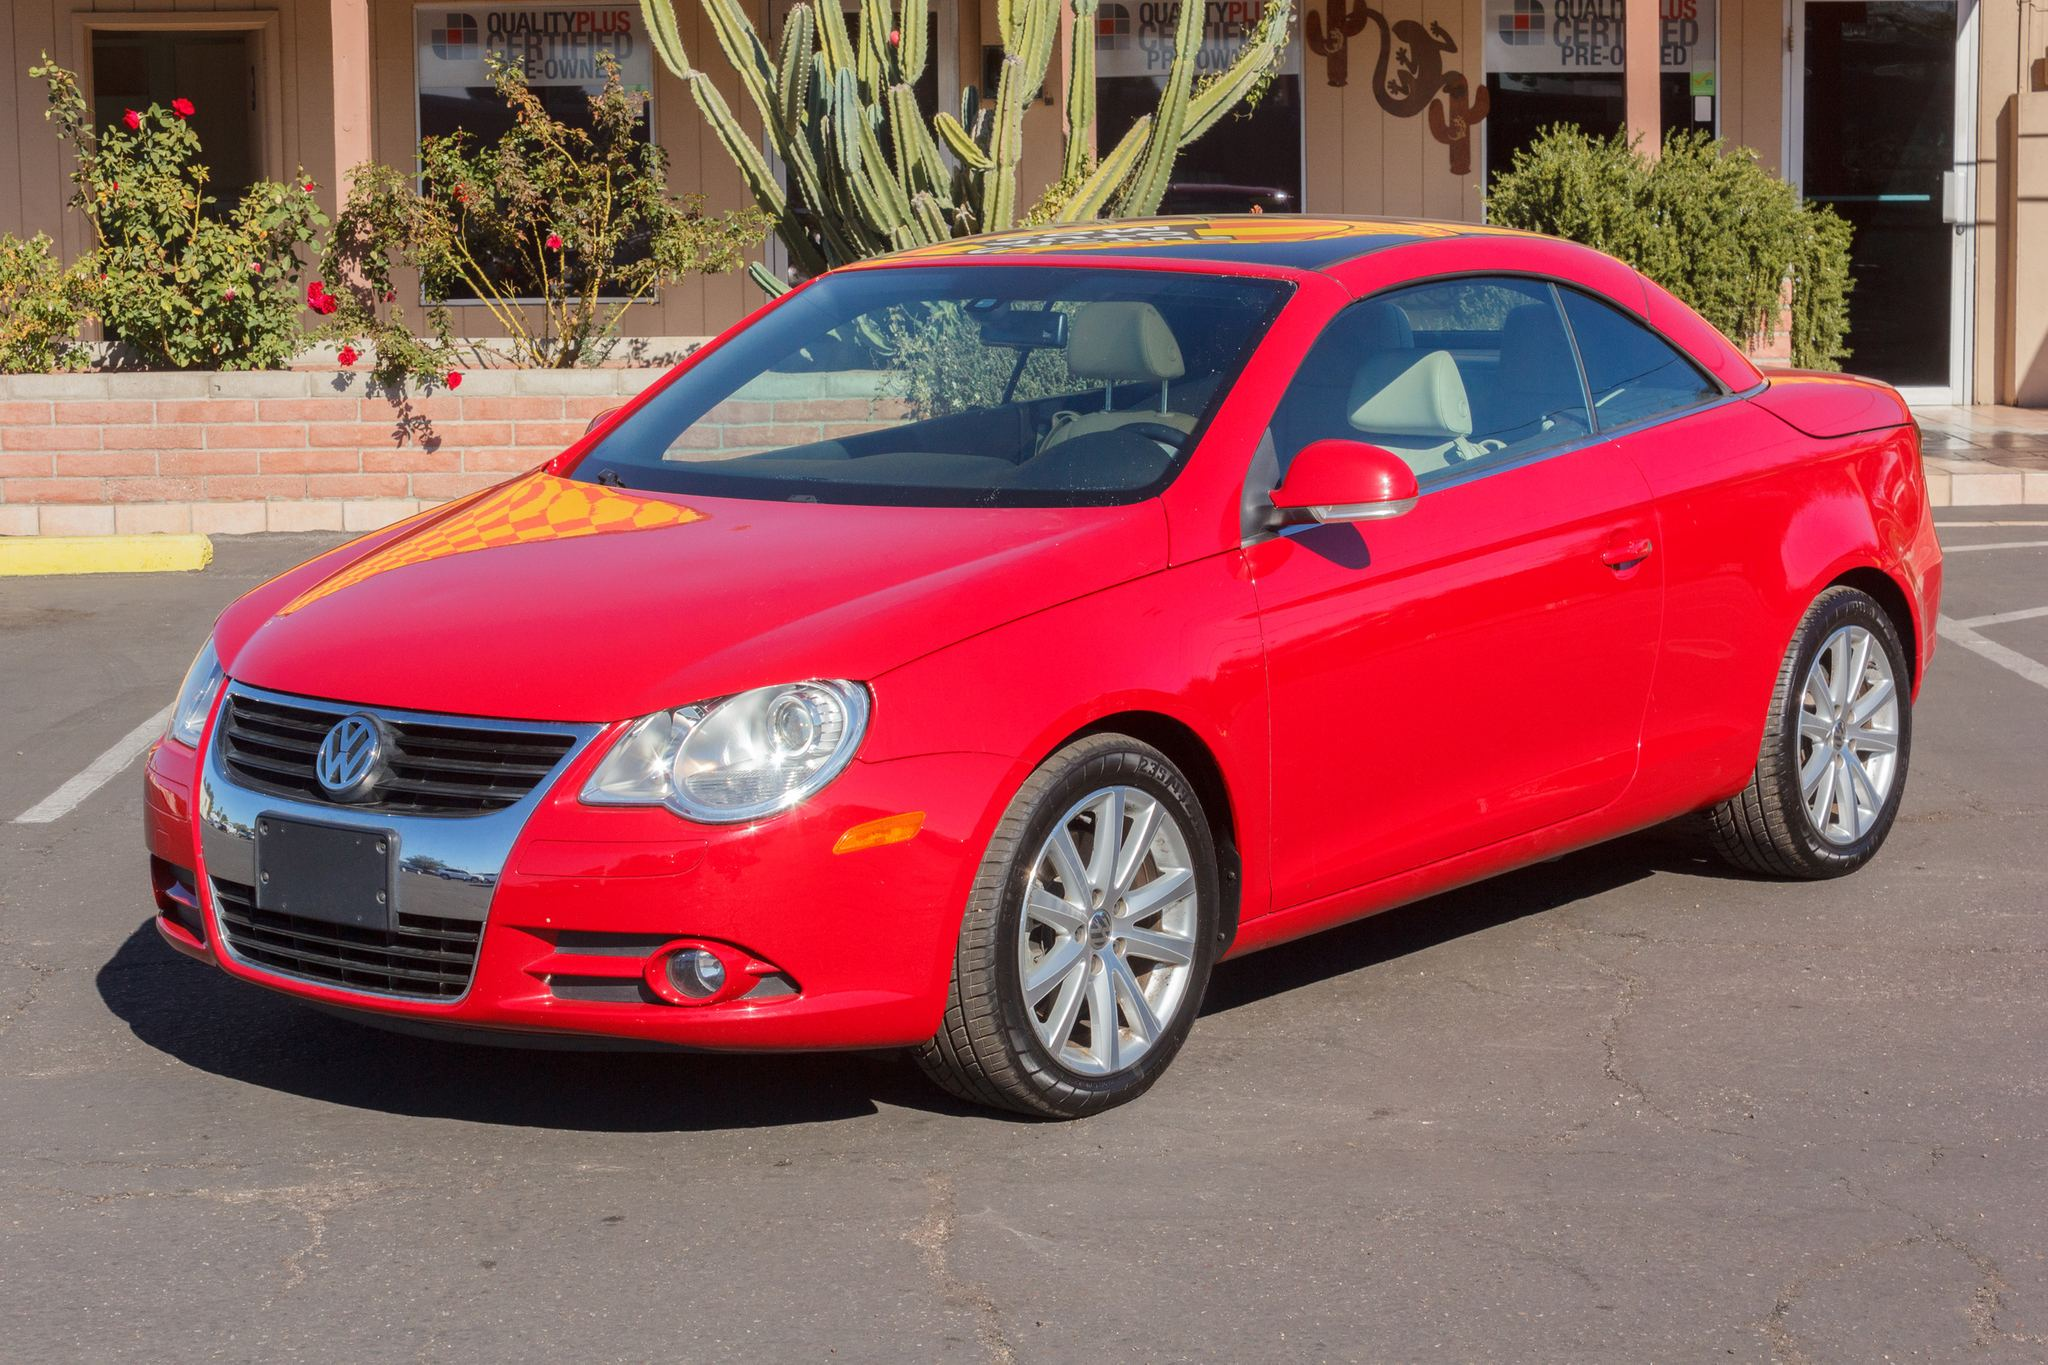 Photo of 2007 Volkswagen Eos 2d Convertible 2.0T Luxury Auto Paprika Red